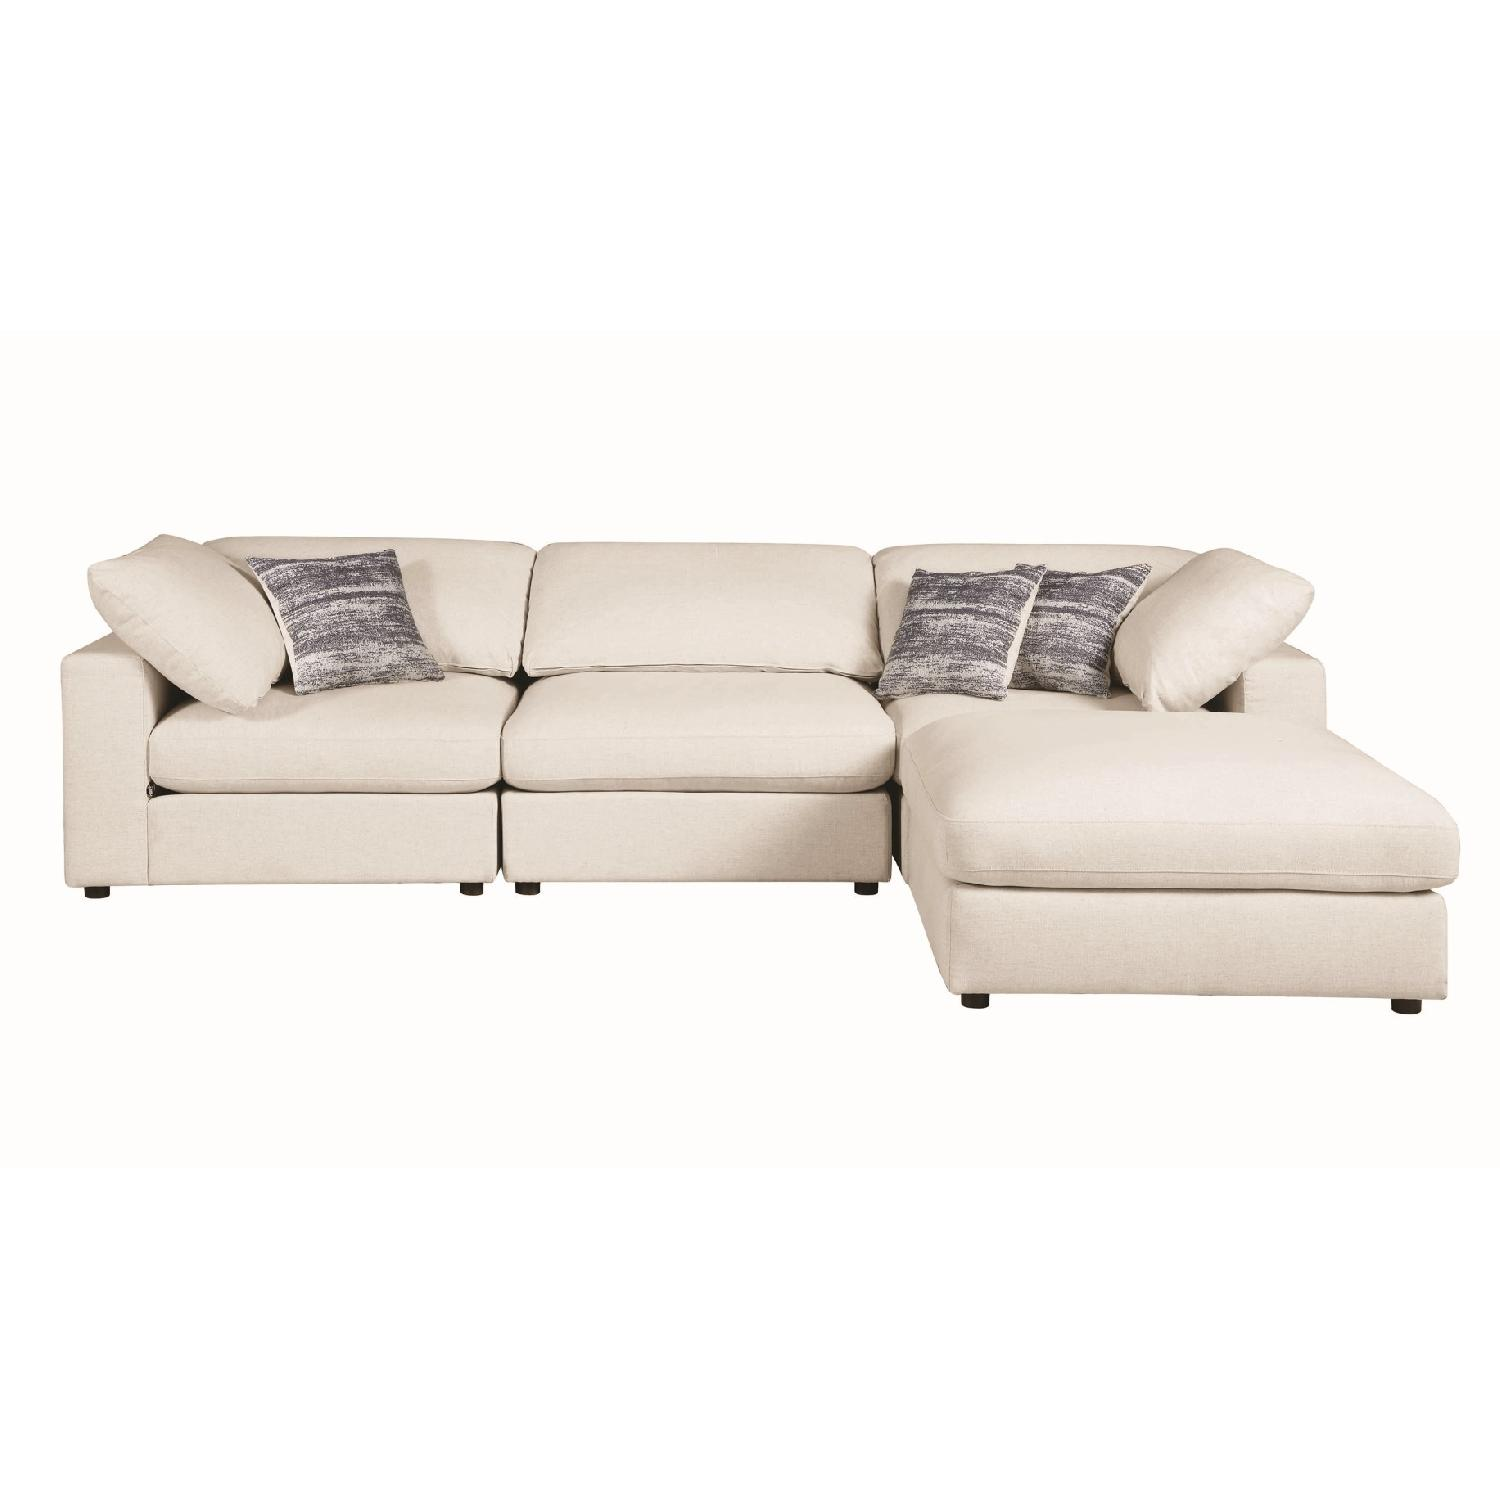 Modern Daybed w/ Trundle Upholstered in Light Grey Fabric - image-16